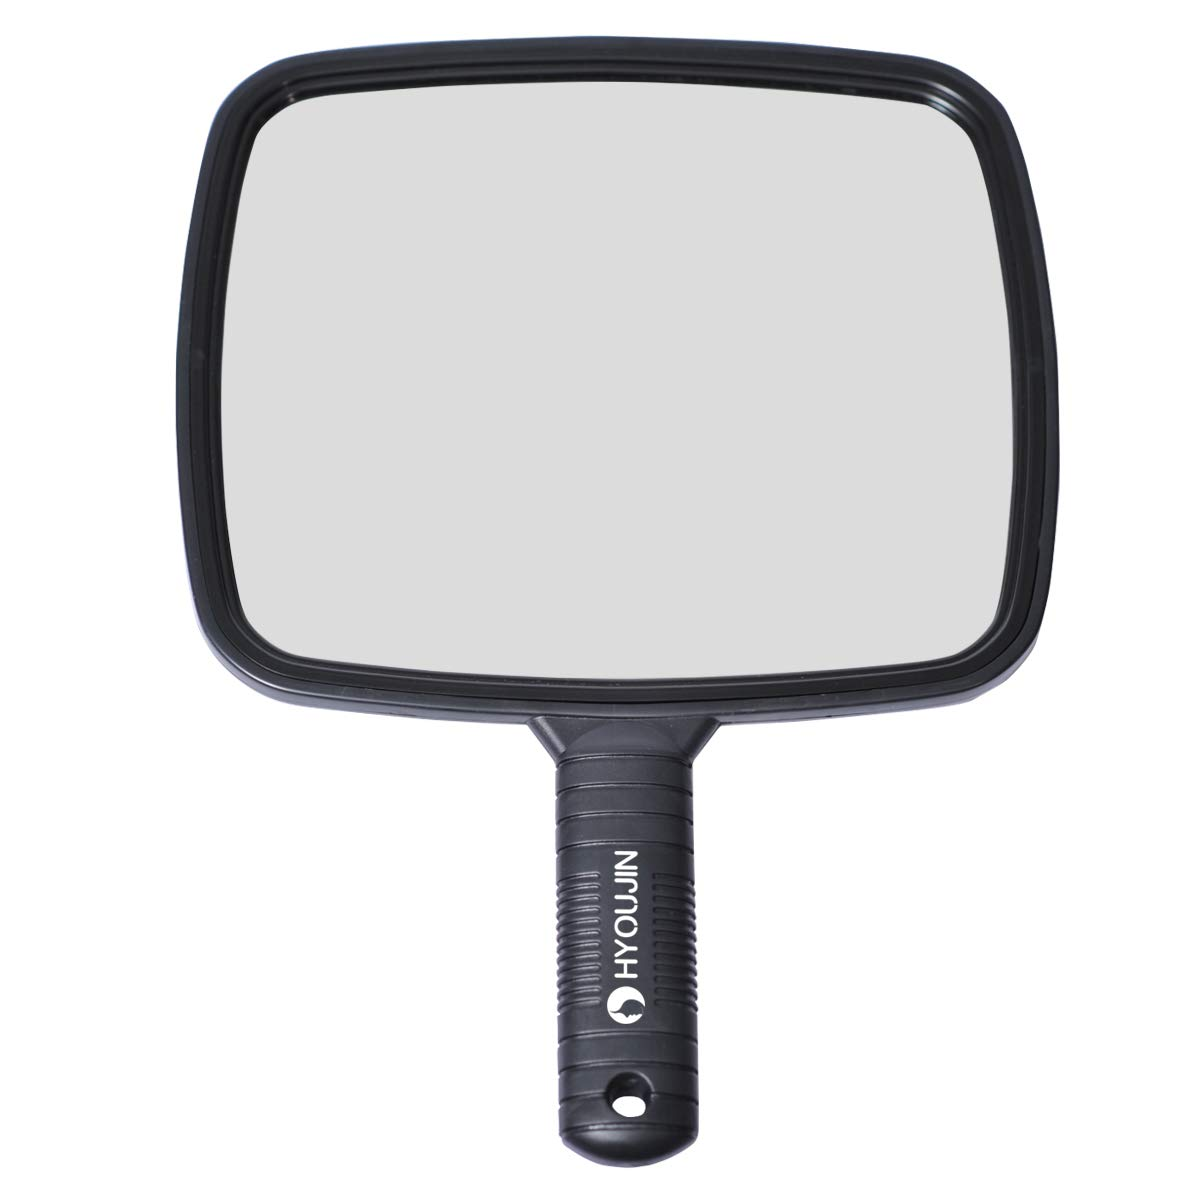 HYOUJIN Hairdressing Hand Mirror Professional Handheld Salon Barbers Hairdressers Paddle Mirror Tool with Handle MM001US-FBA